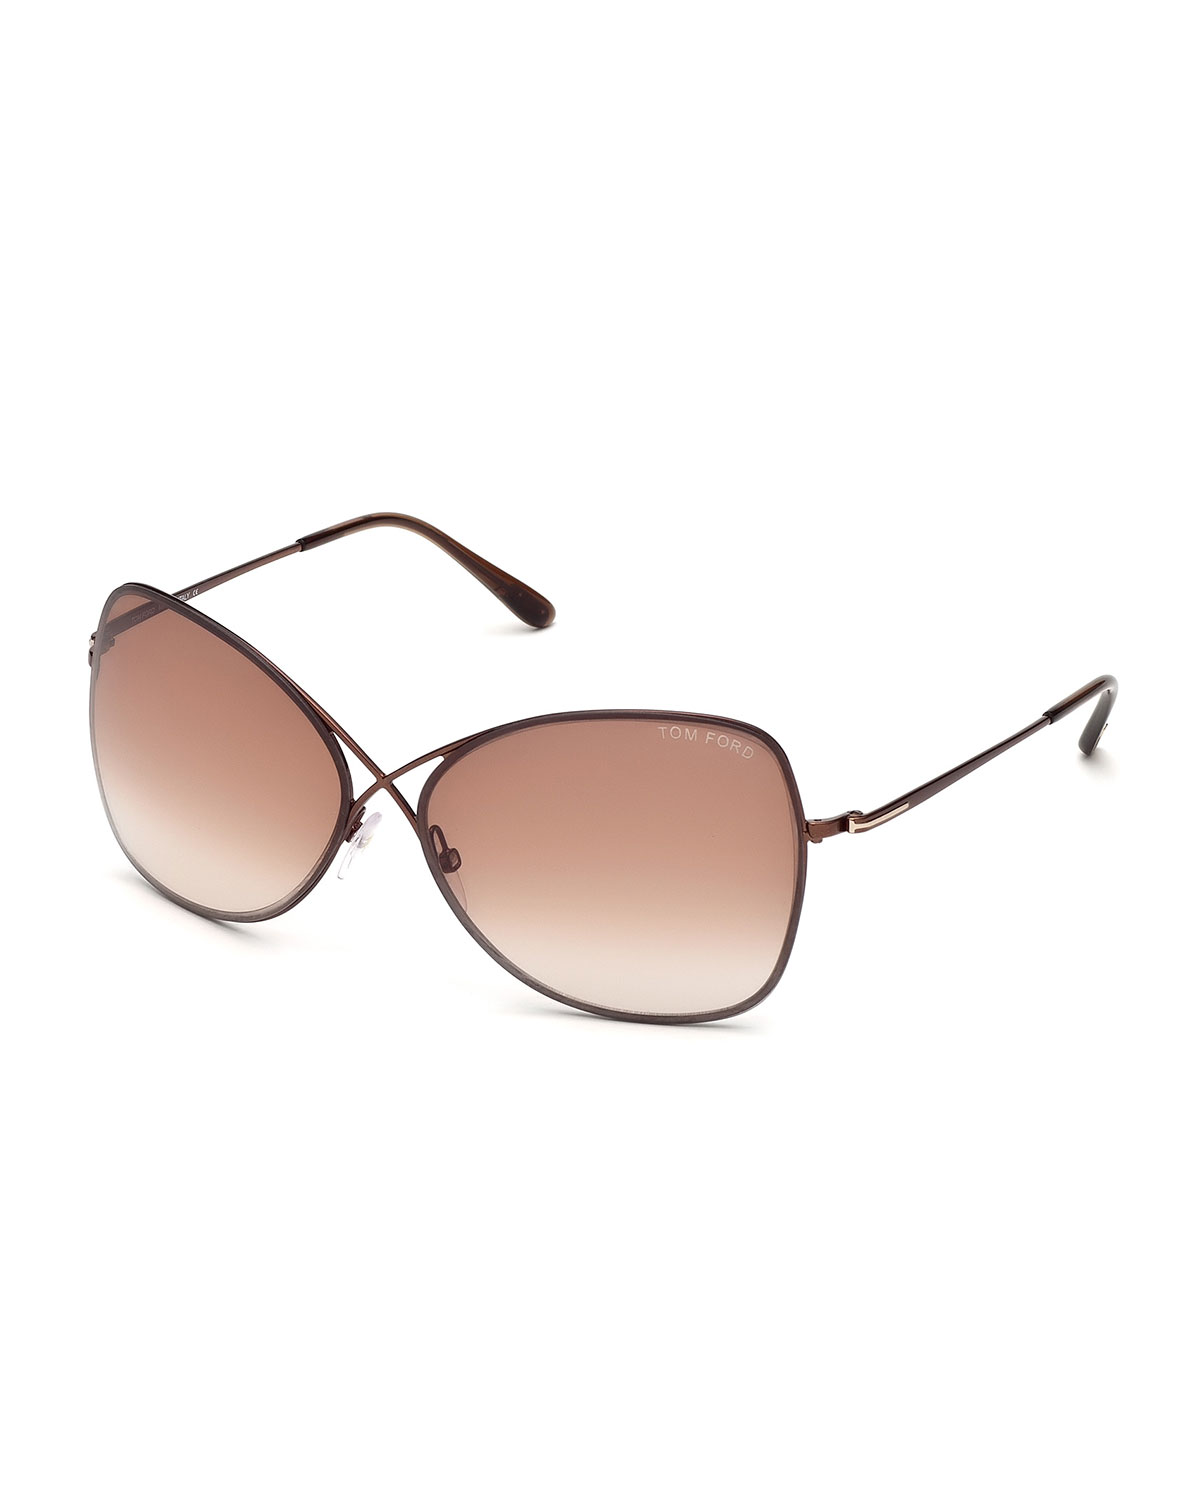 8947d83671 Tom Ford Brown Sunglasses